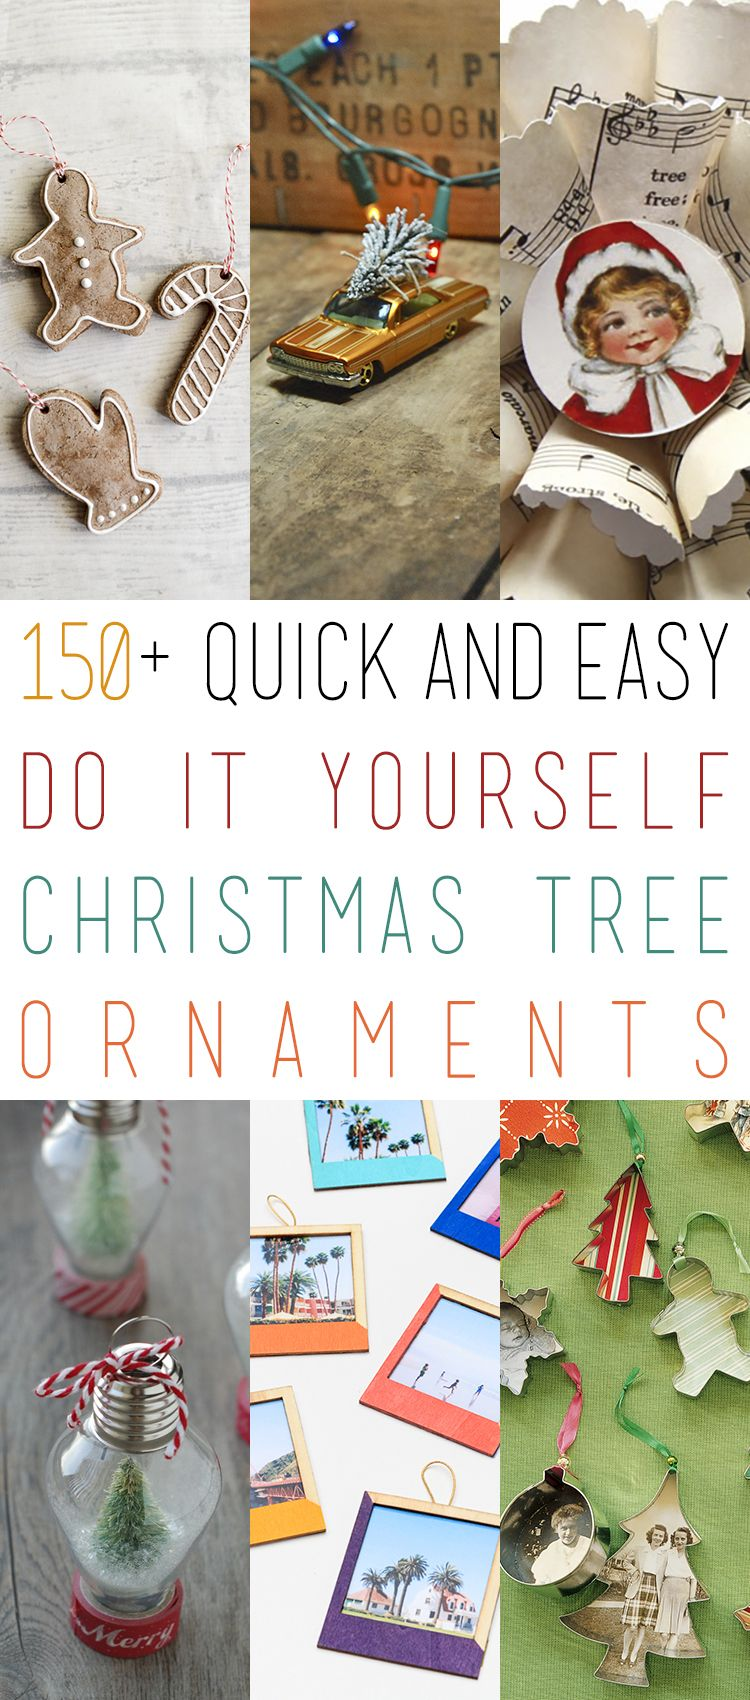 150 quick and easy diy christmas tree ornaments christmas tree 150 quick and easy diy christmas tree ornaments solutioingenieria Choice Image